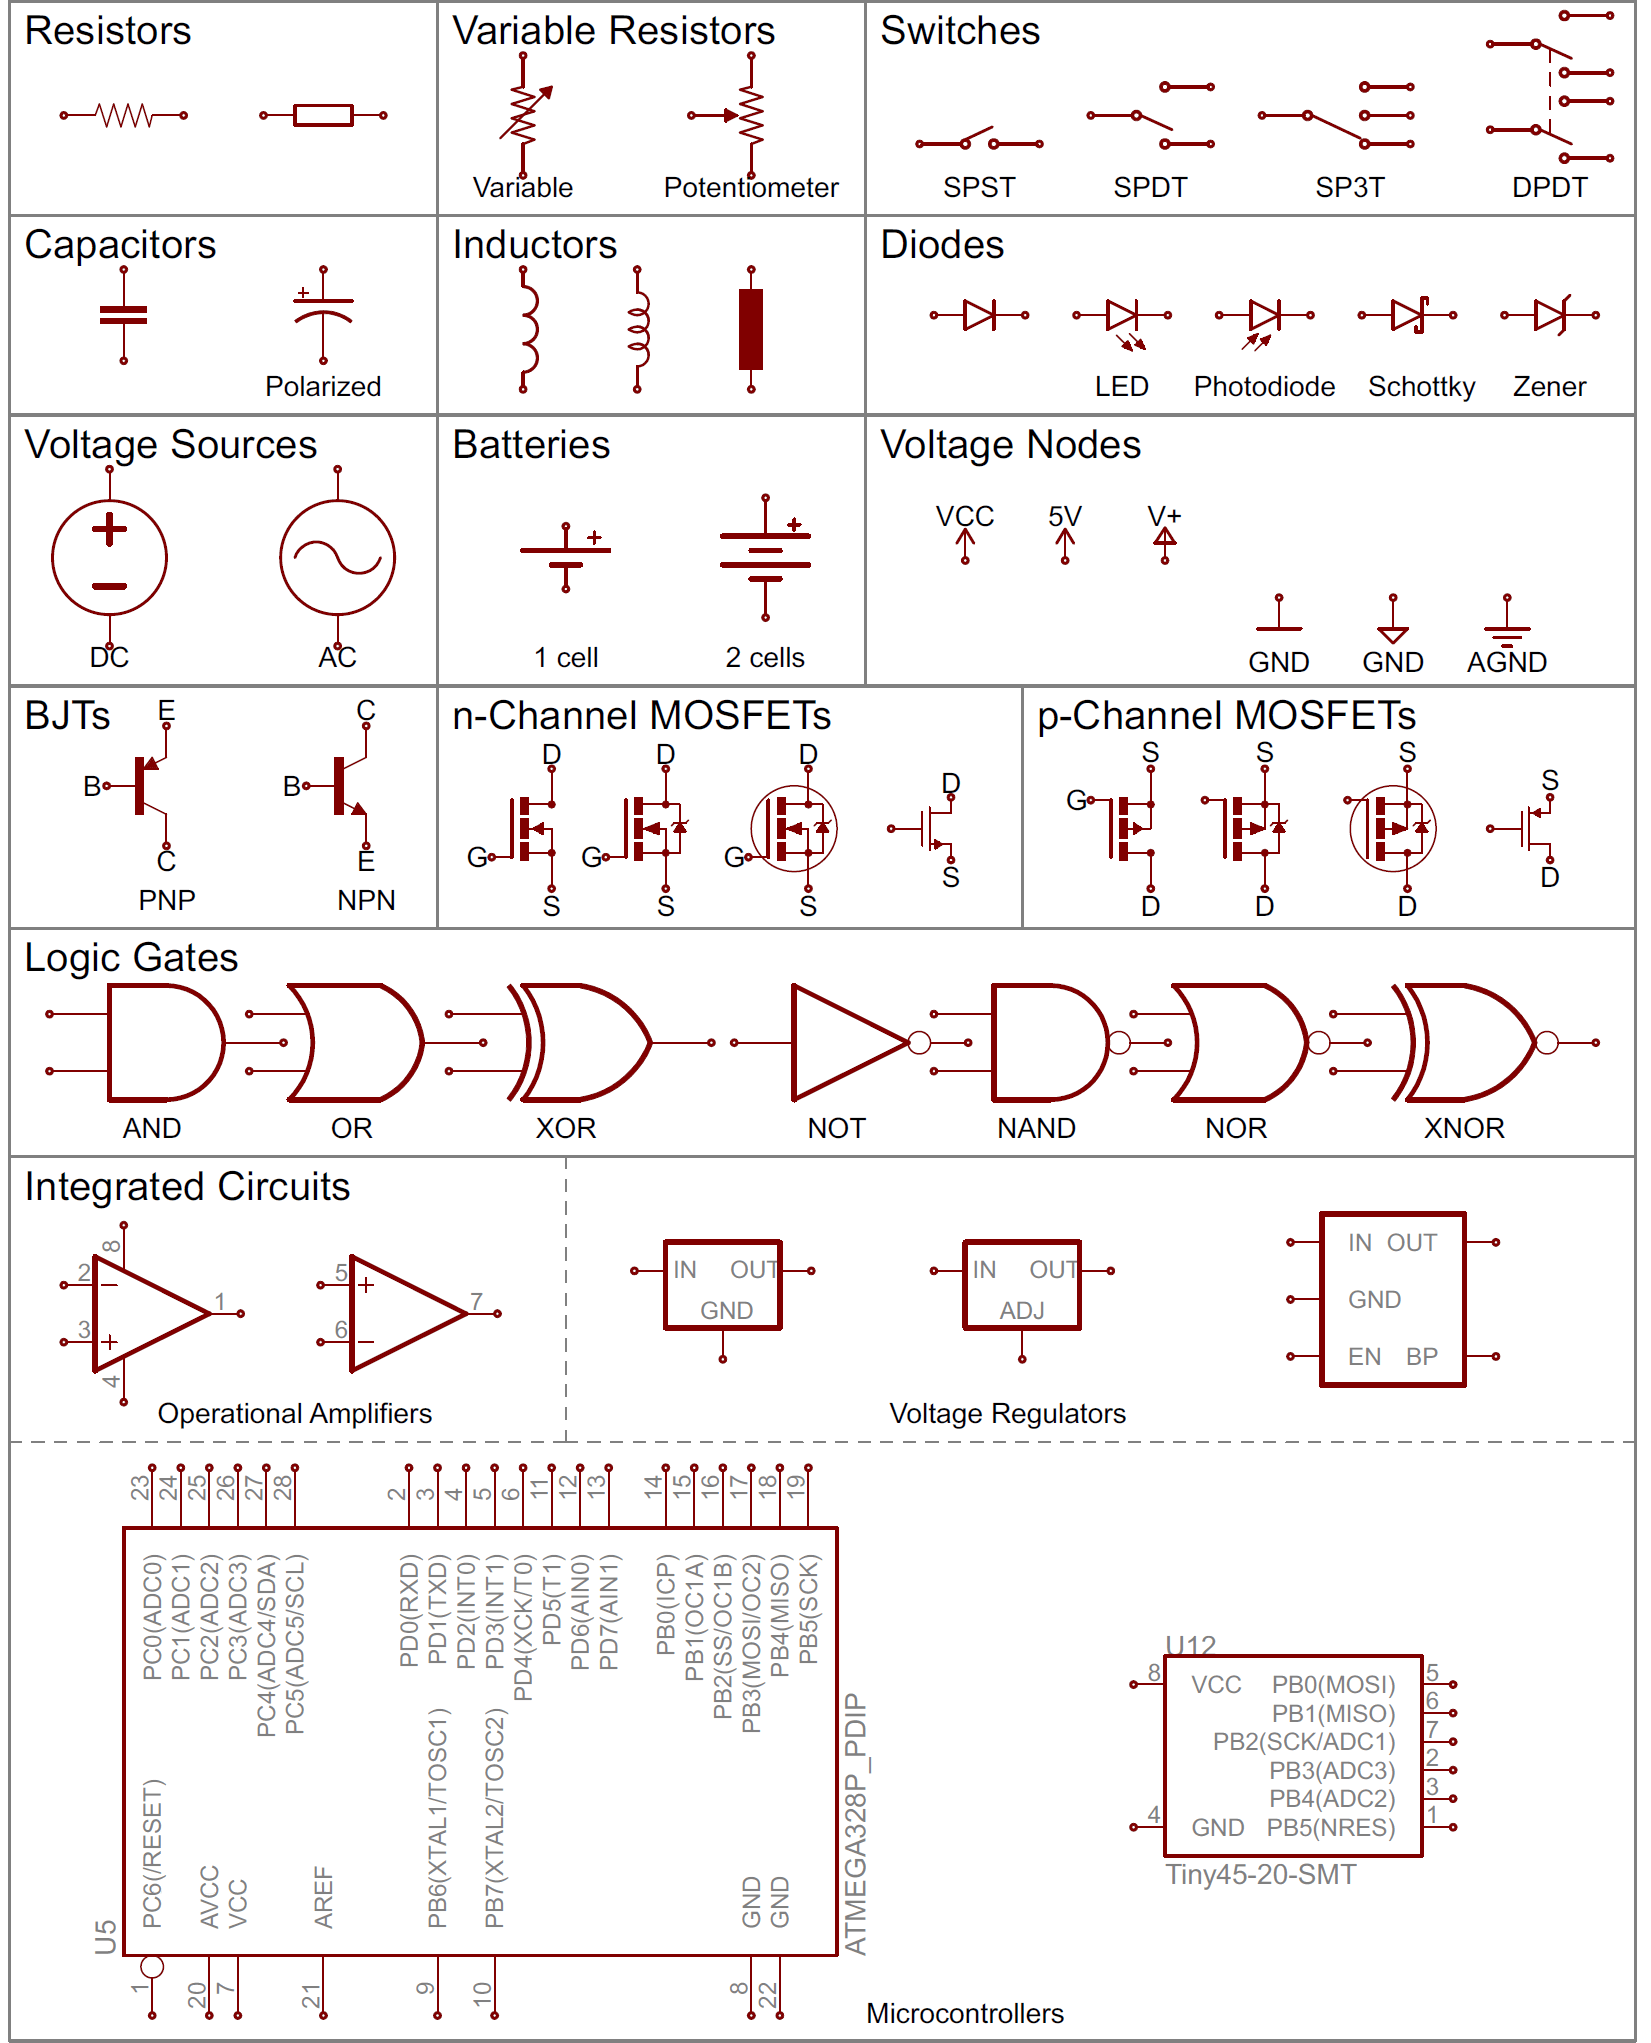 Wiring Diagram Symbols Meaning